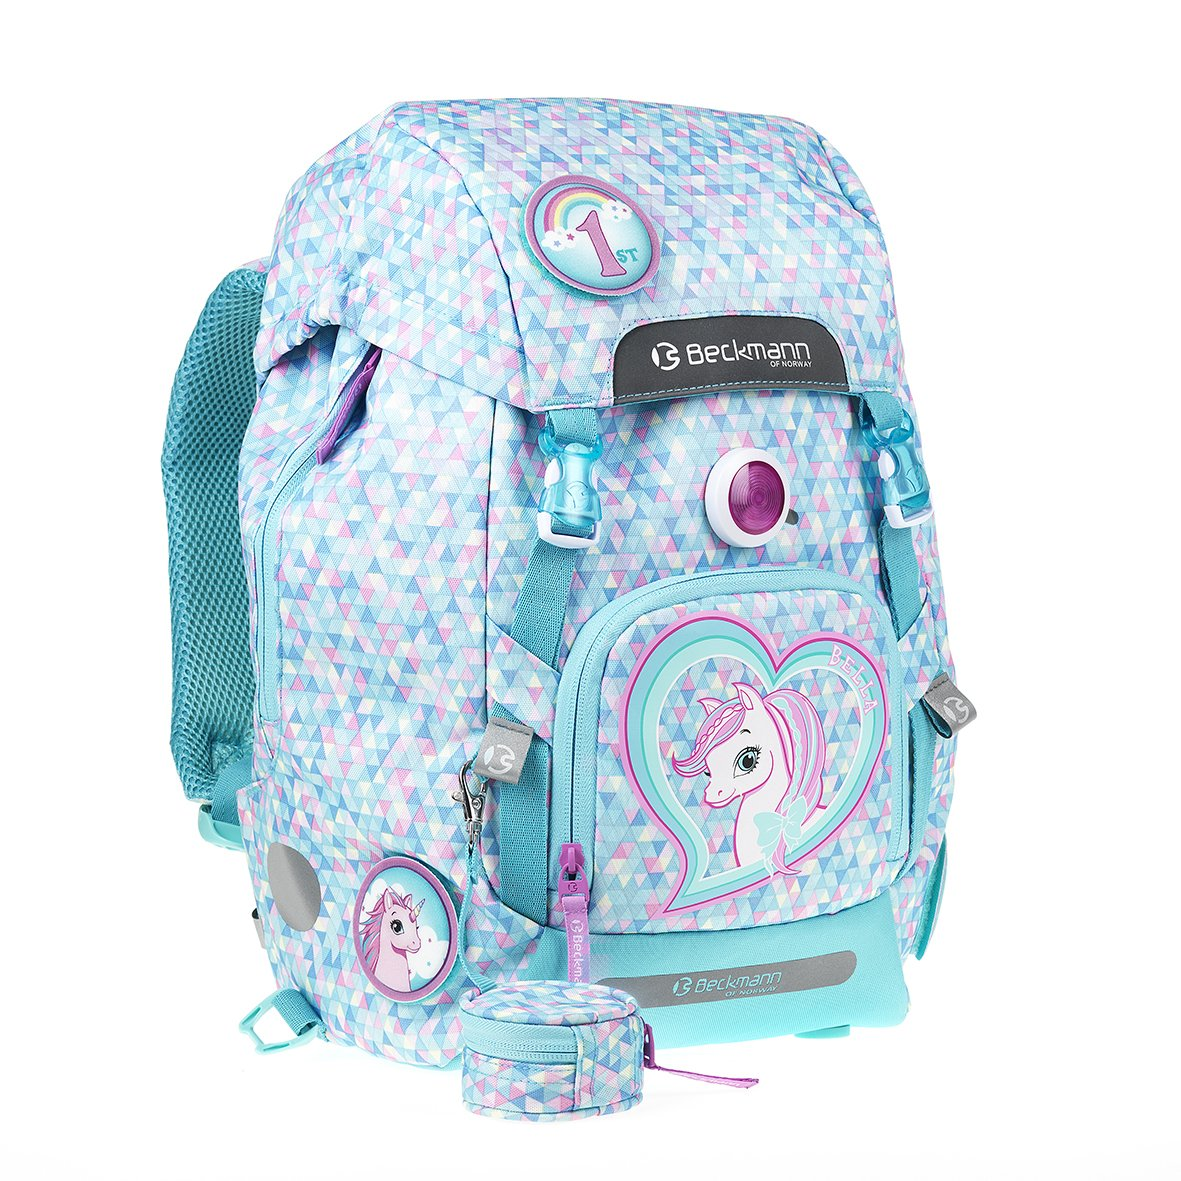 162ad0cb09 Beckmann of Norway School Backpack